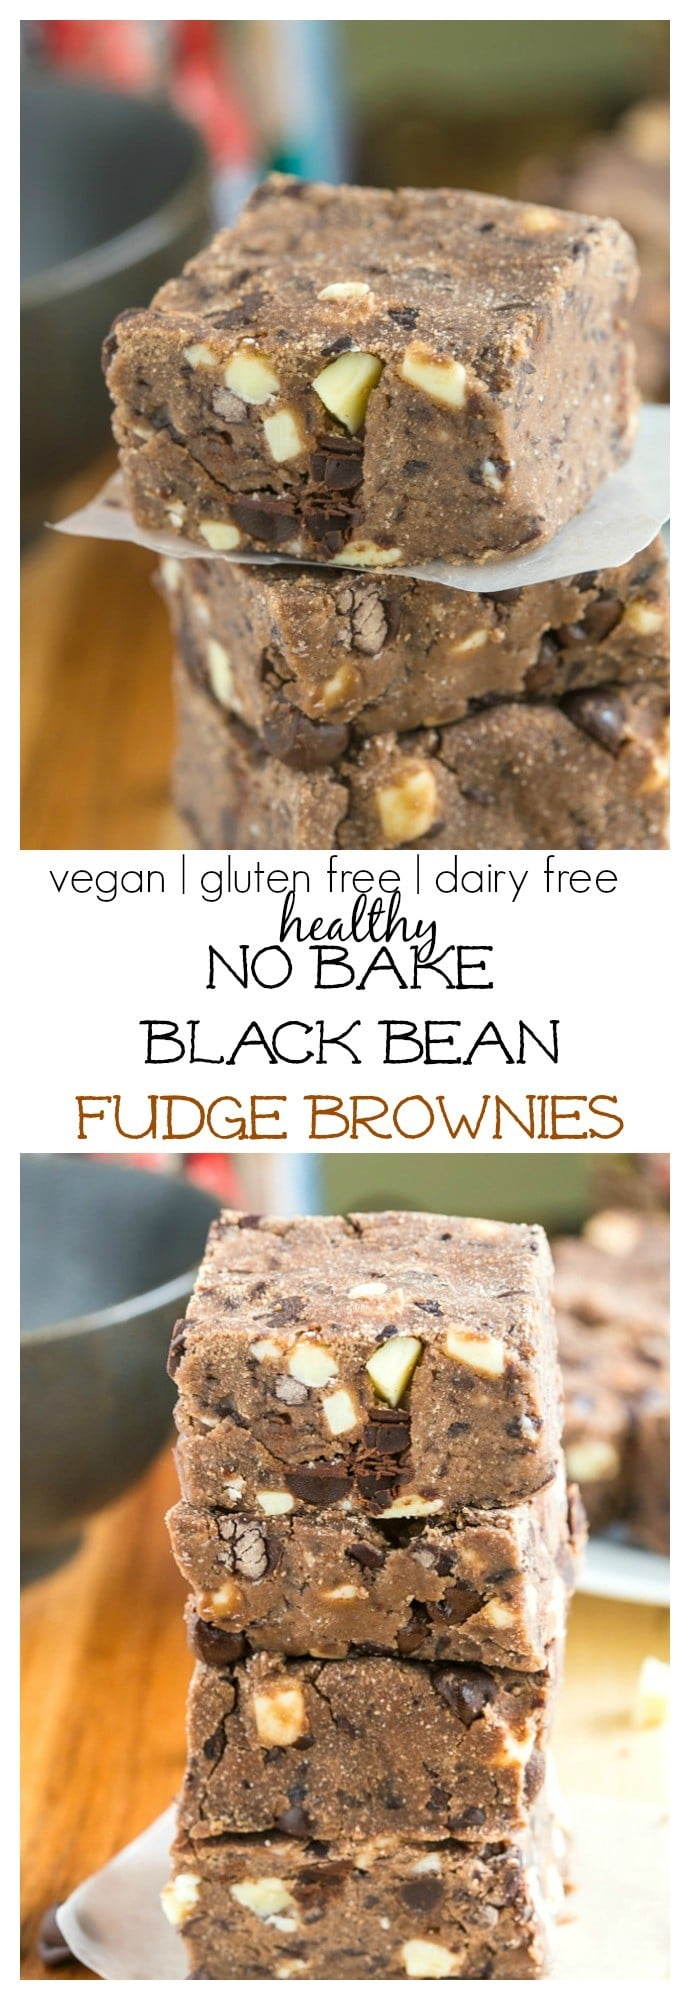 No Bake Black Bean Fudge Brownies- 1 bowl + 10 minutes- High in protein + Fiber- Naturally vegan, gluten free, allergy free + dairy free! @thebigmansworld - thebigmansworld.com